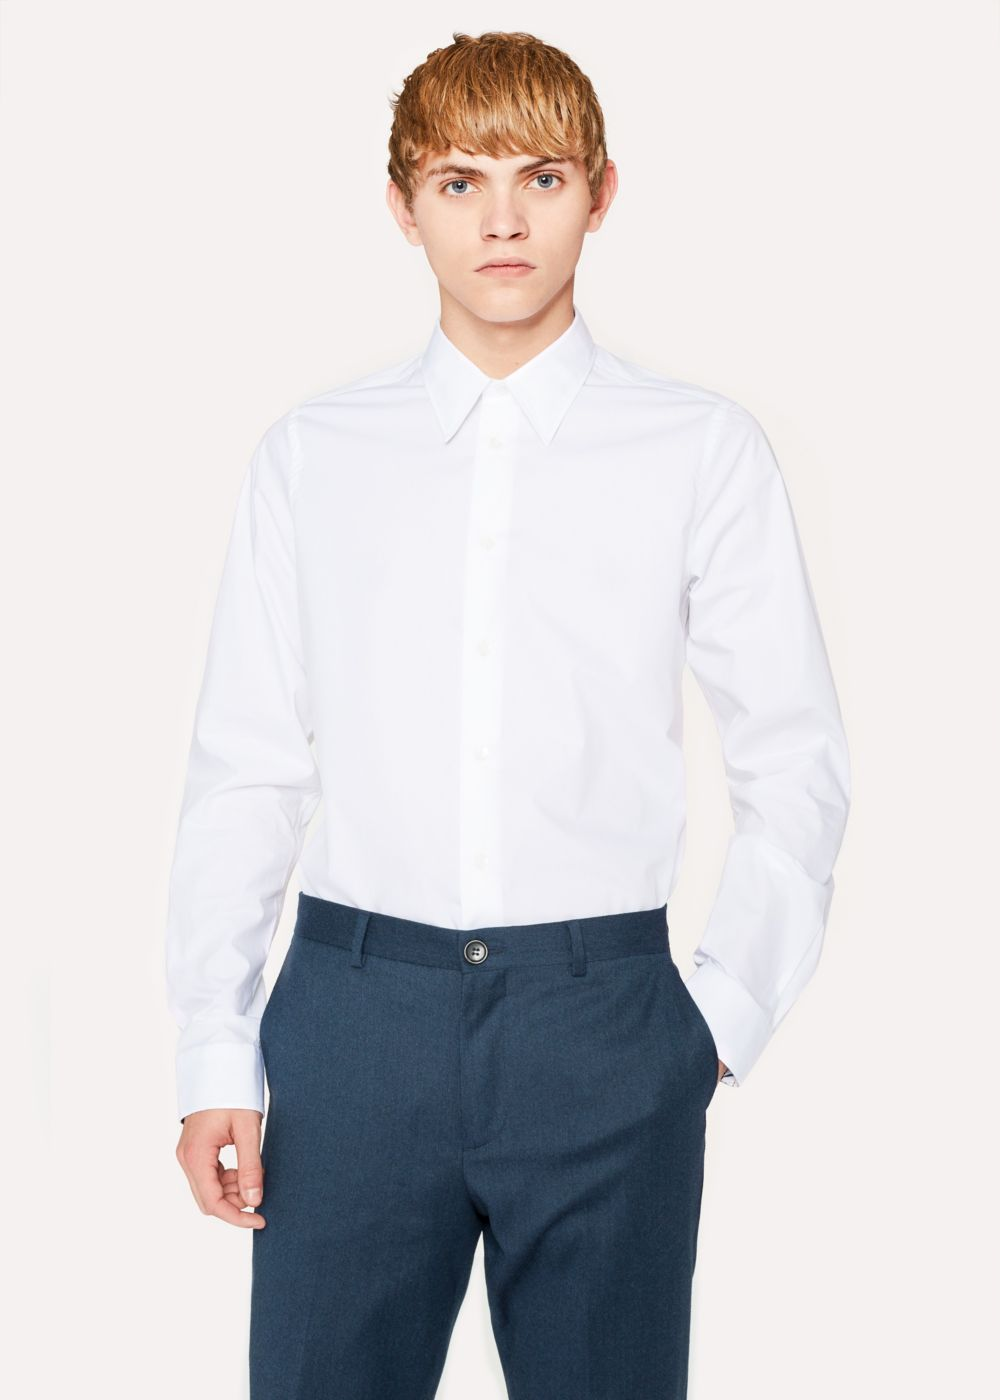 Paul Smith Men's Tailored-Fit White Contrast-Cuff Shirt